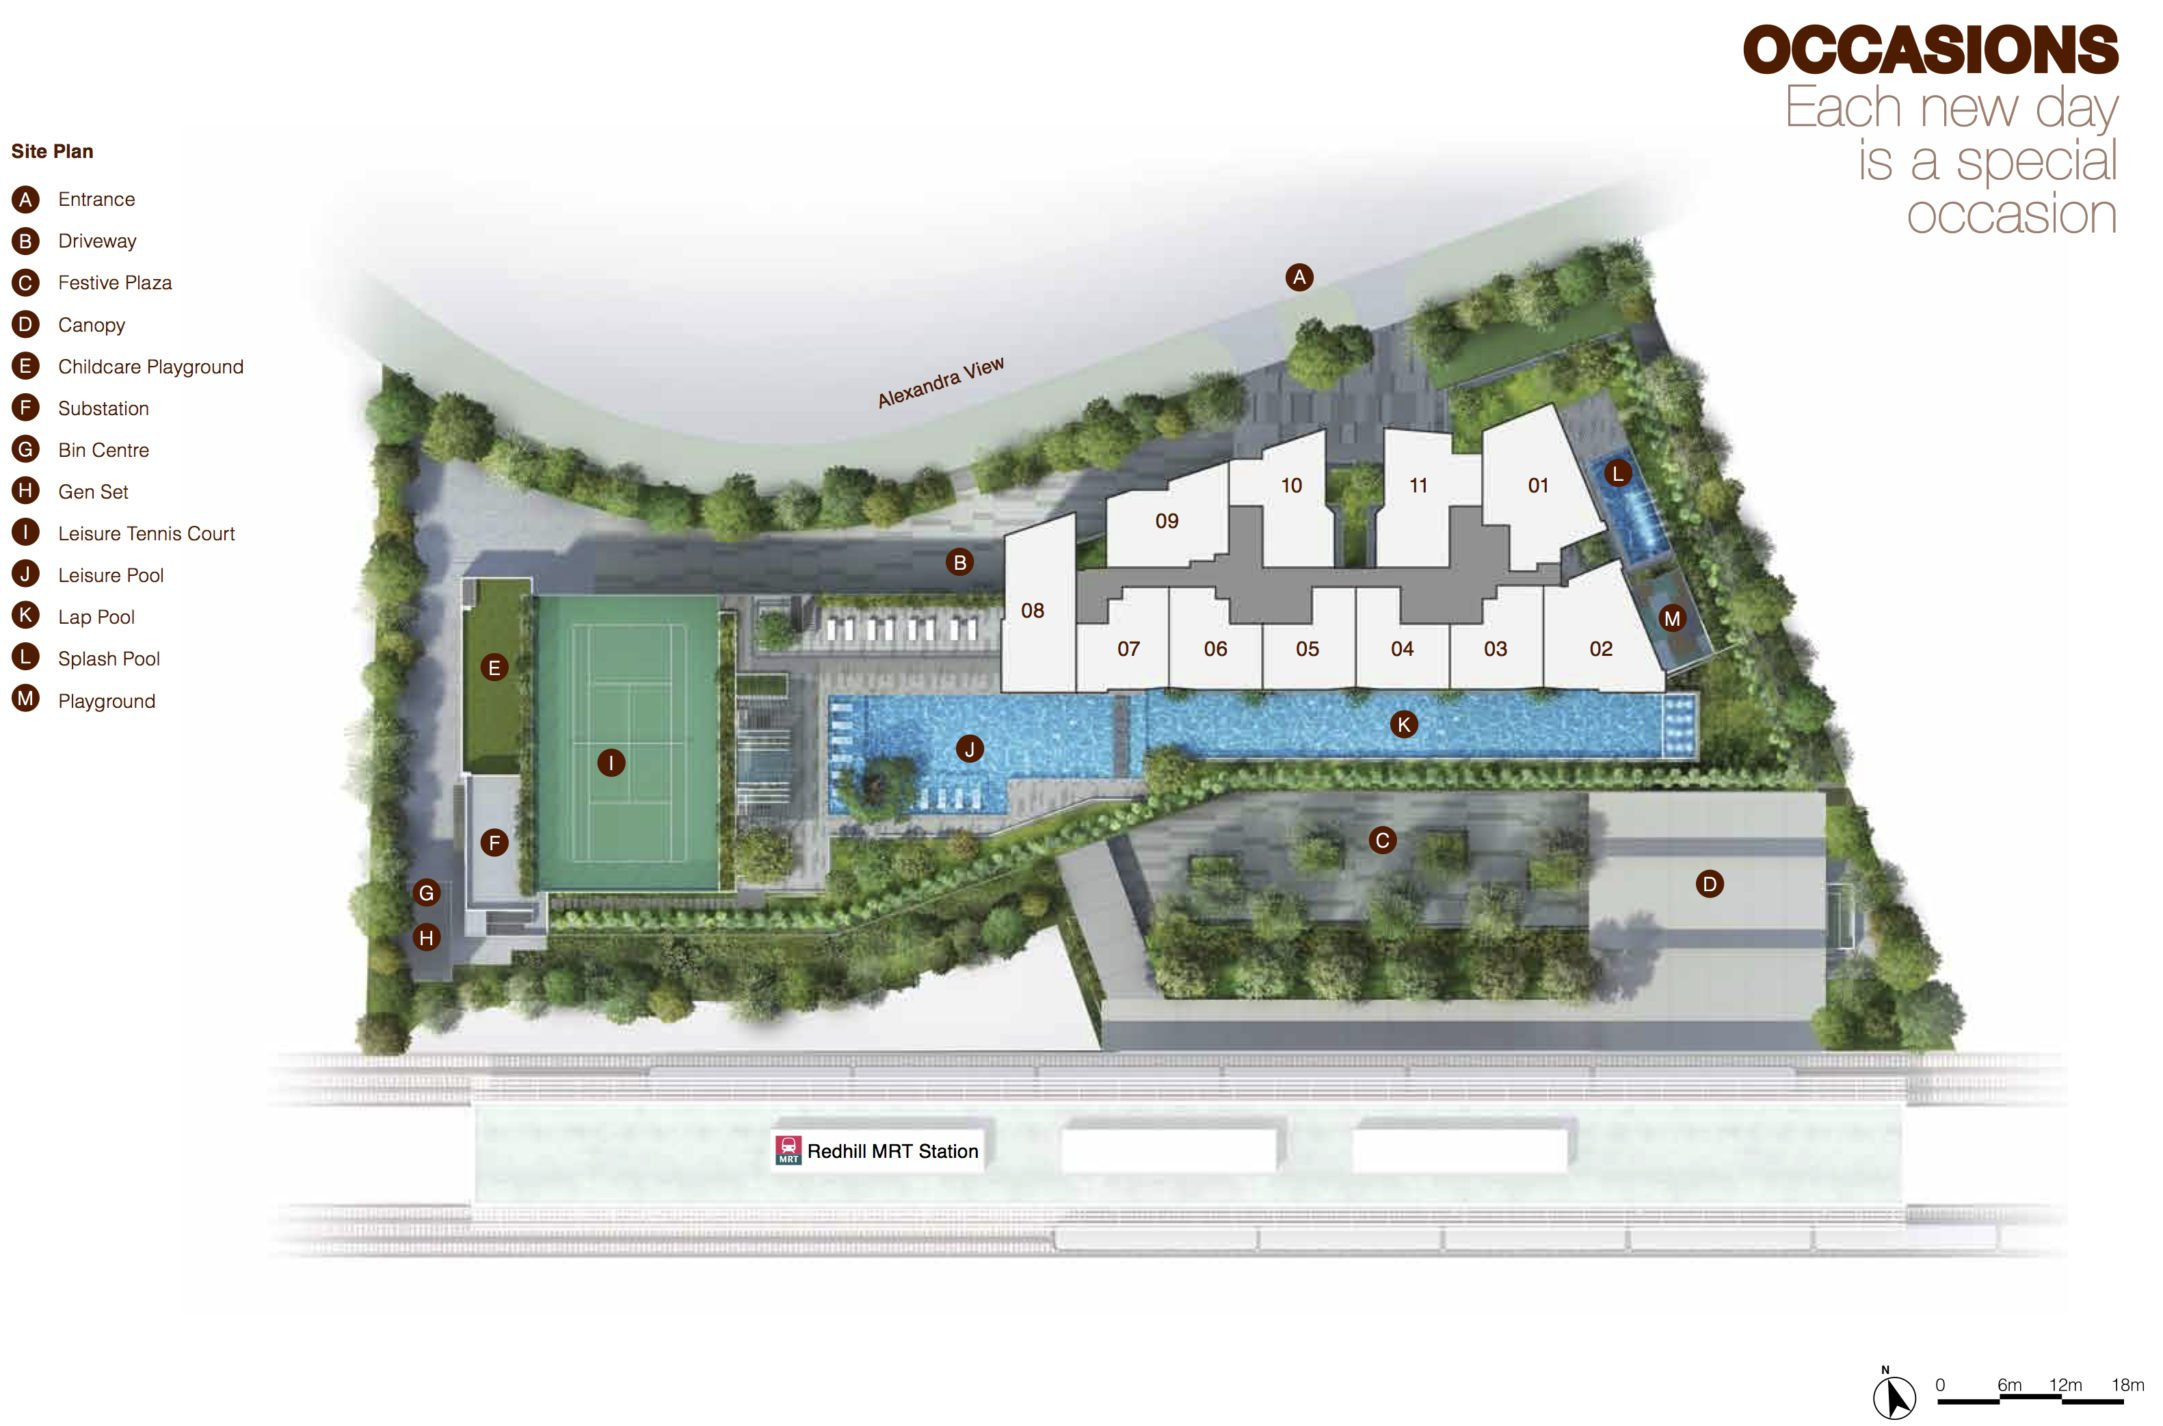 Artra site plan and level 1 facilities